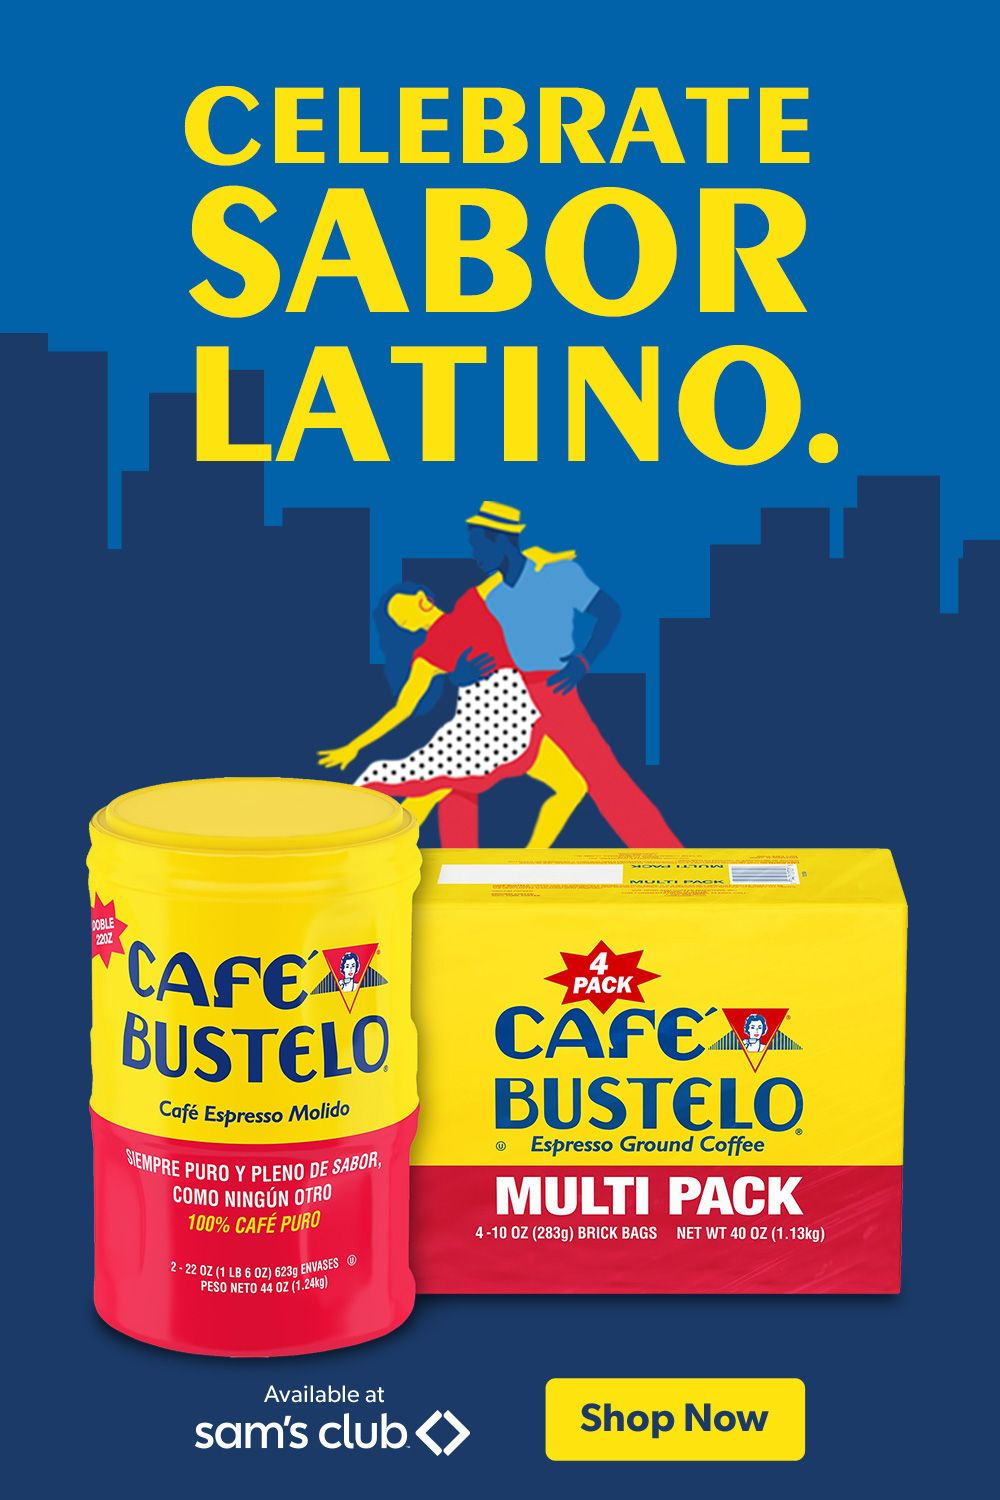 Make anytime the right time for Sabor Latino. in 2020